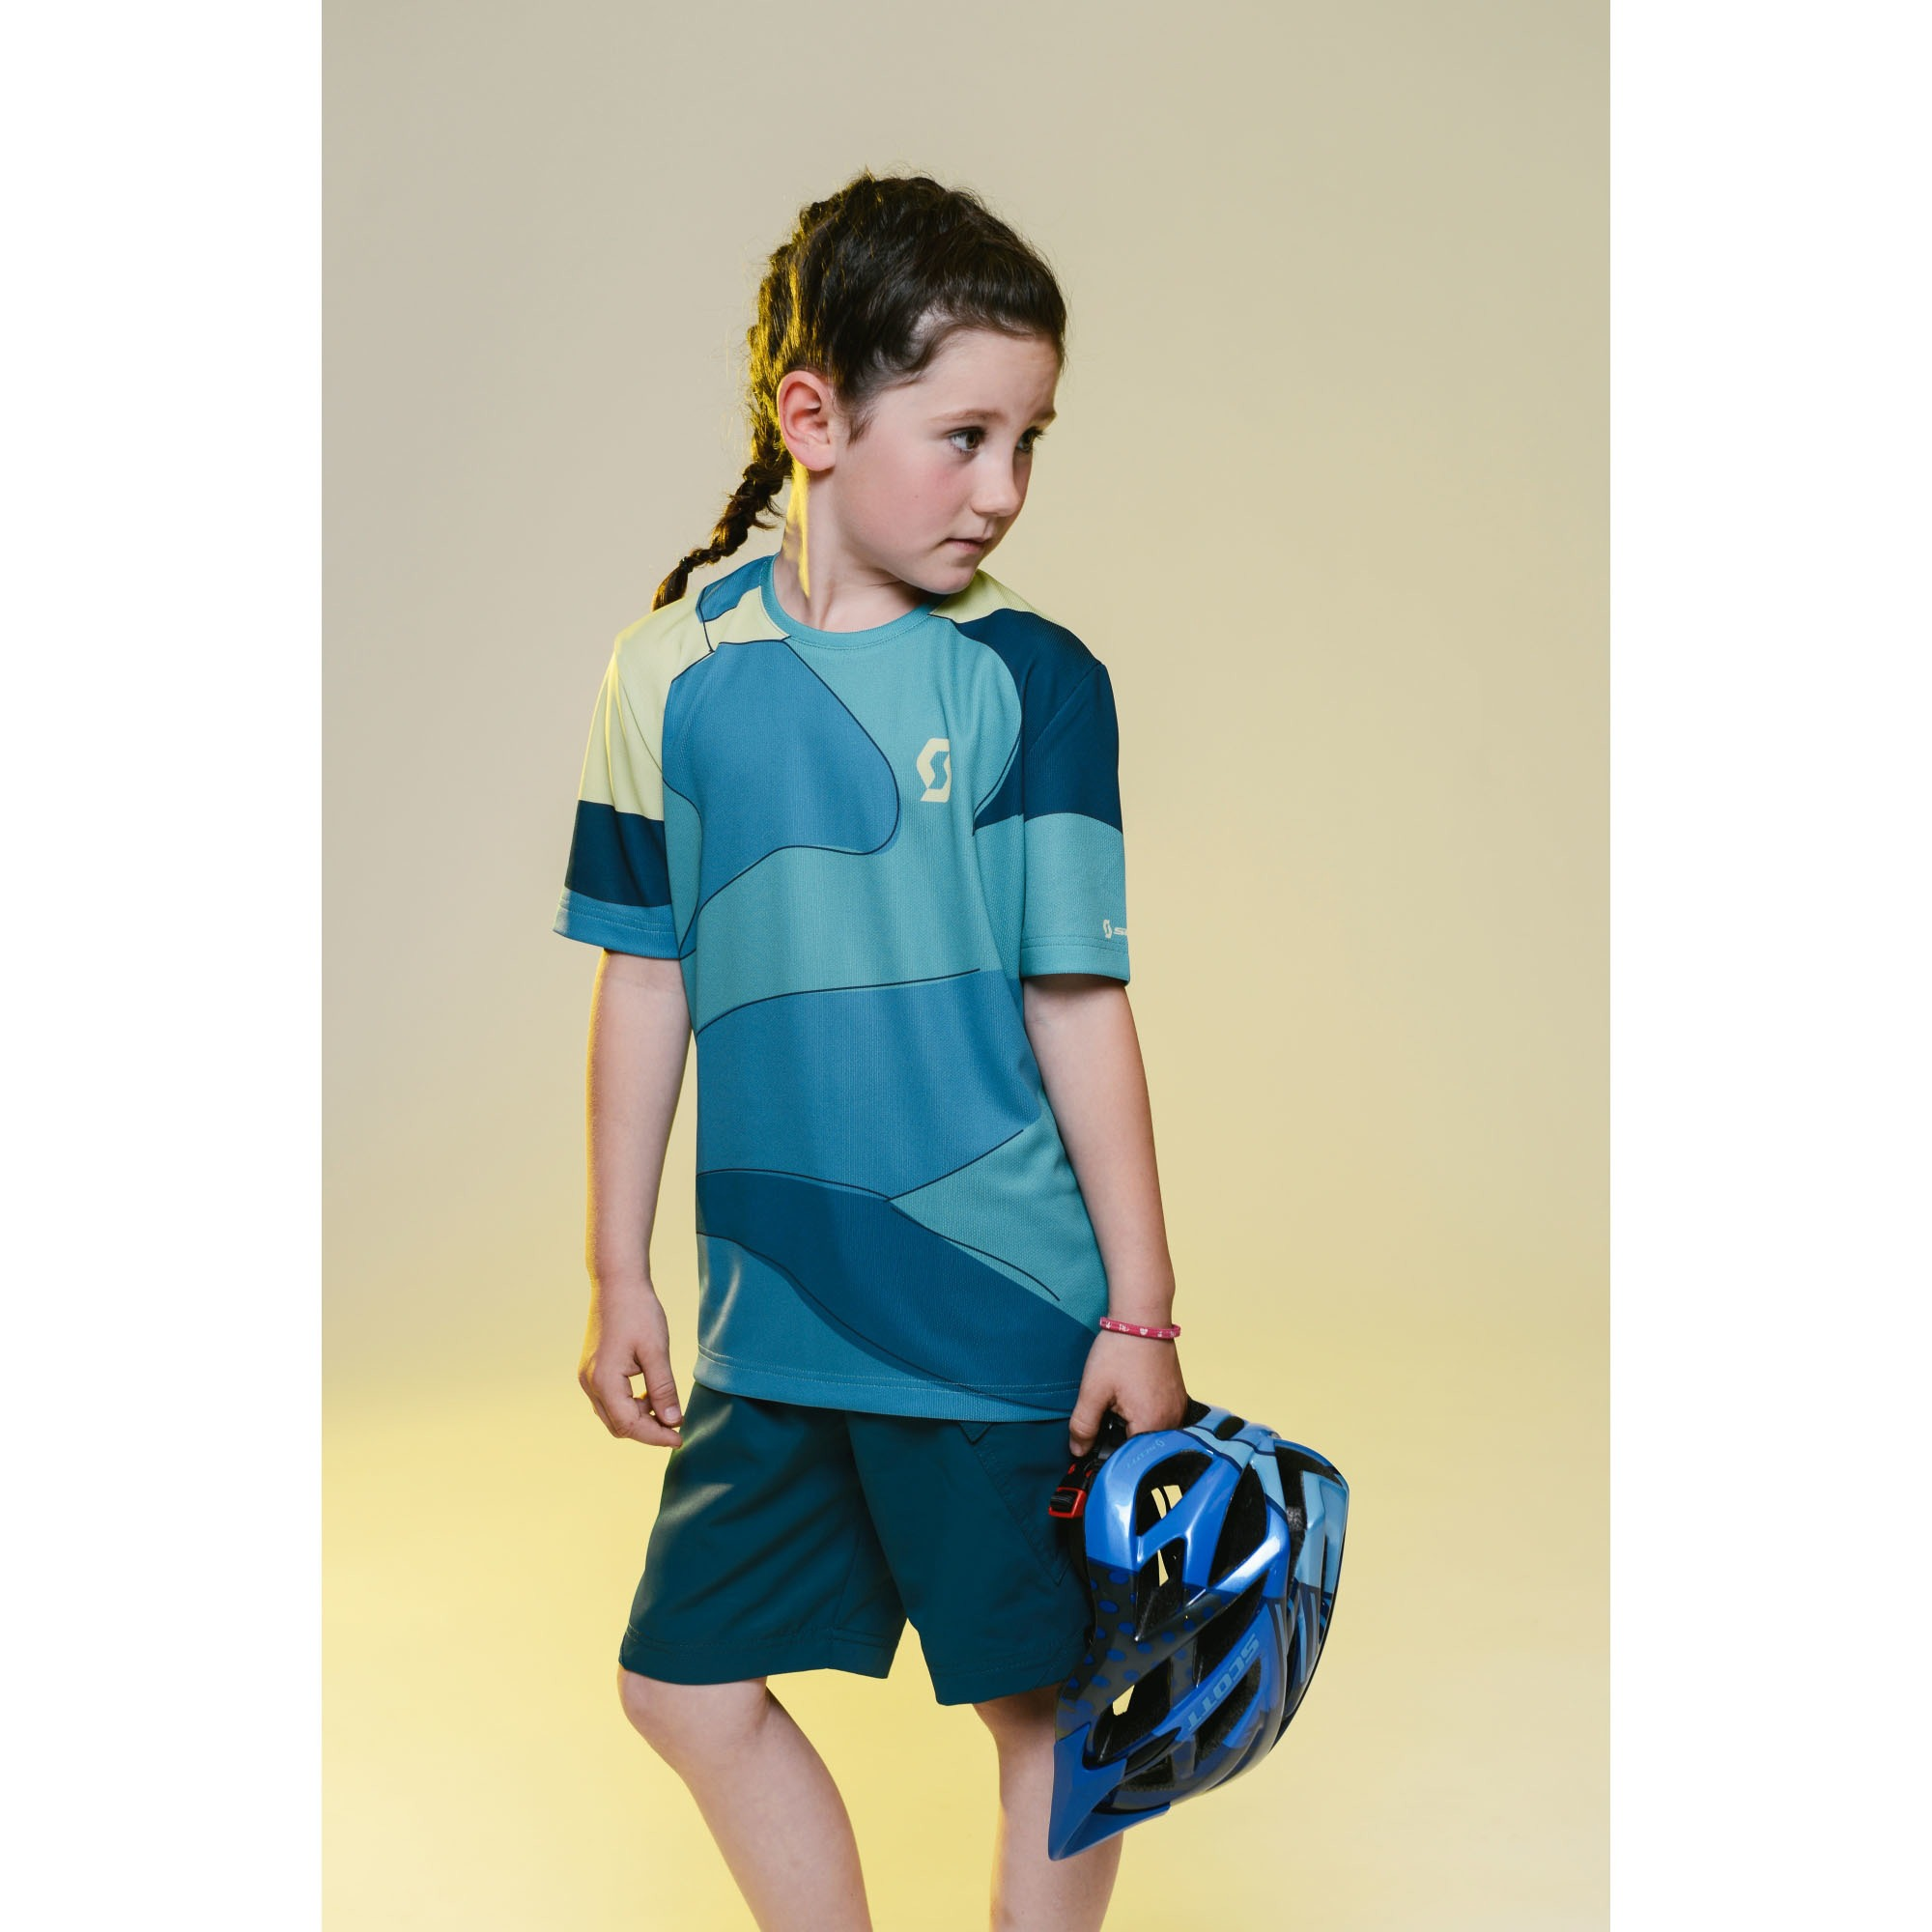 SCOTT Trail 20 Kurzarm-Shirt für Kinder